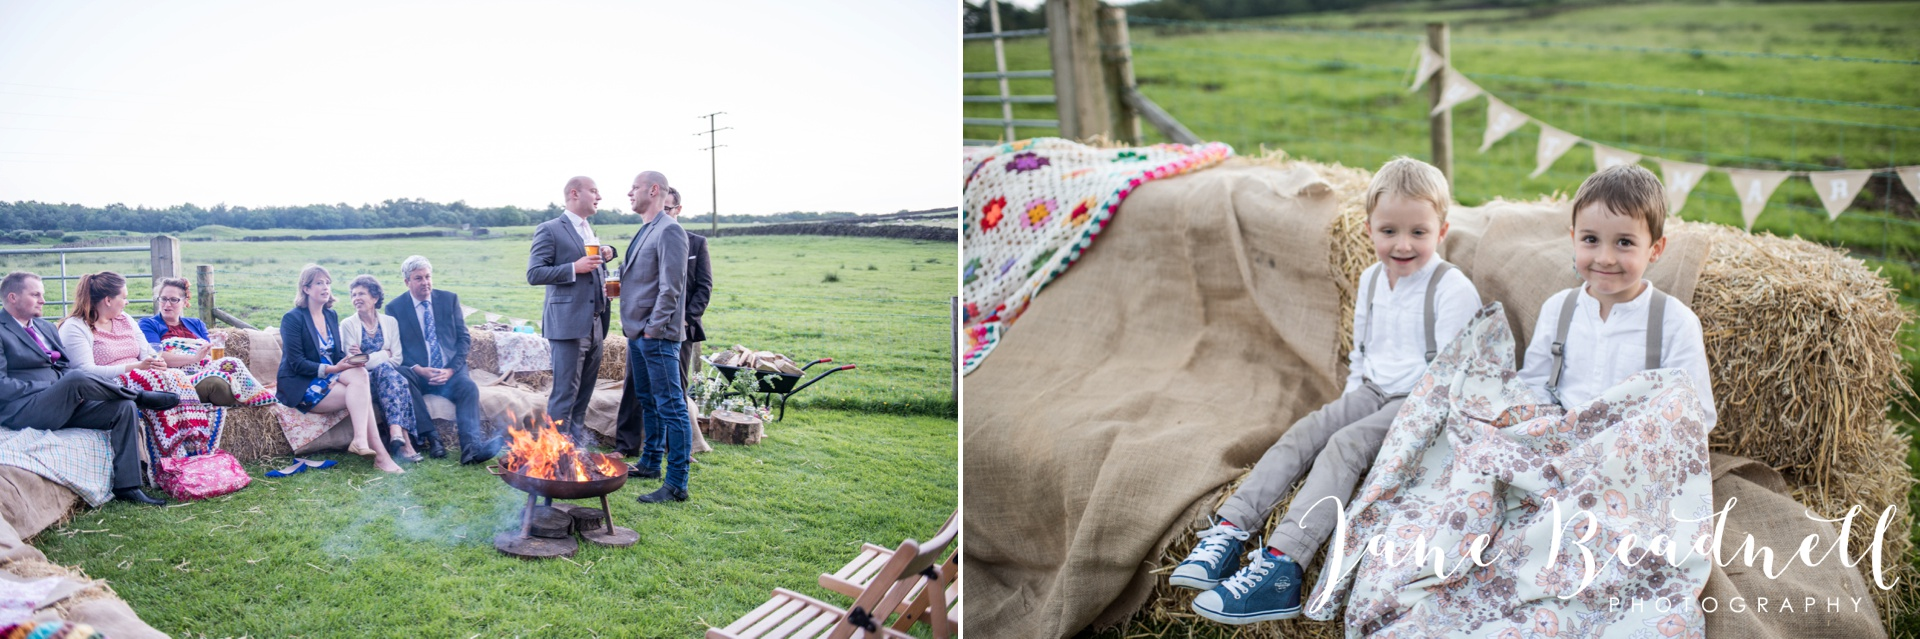 Yorkshire Wedding Photography the cheerful Chilli Barn Wedding by Jane Beadnell Photography_0199